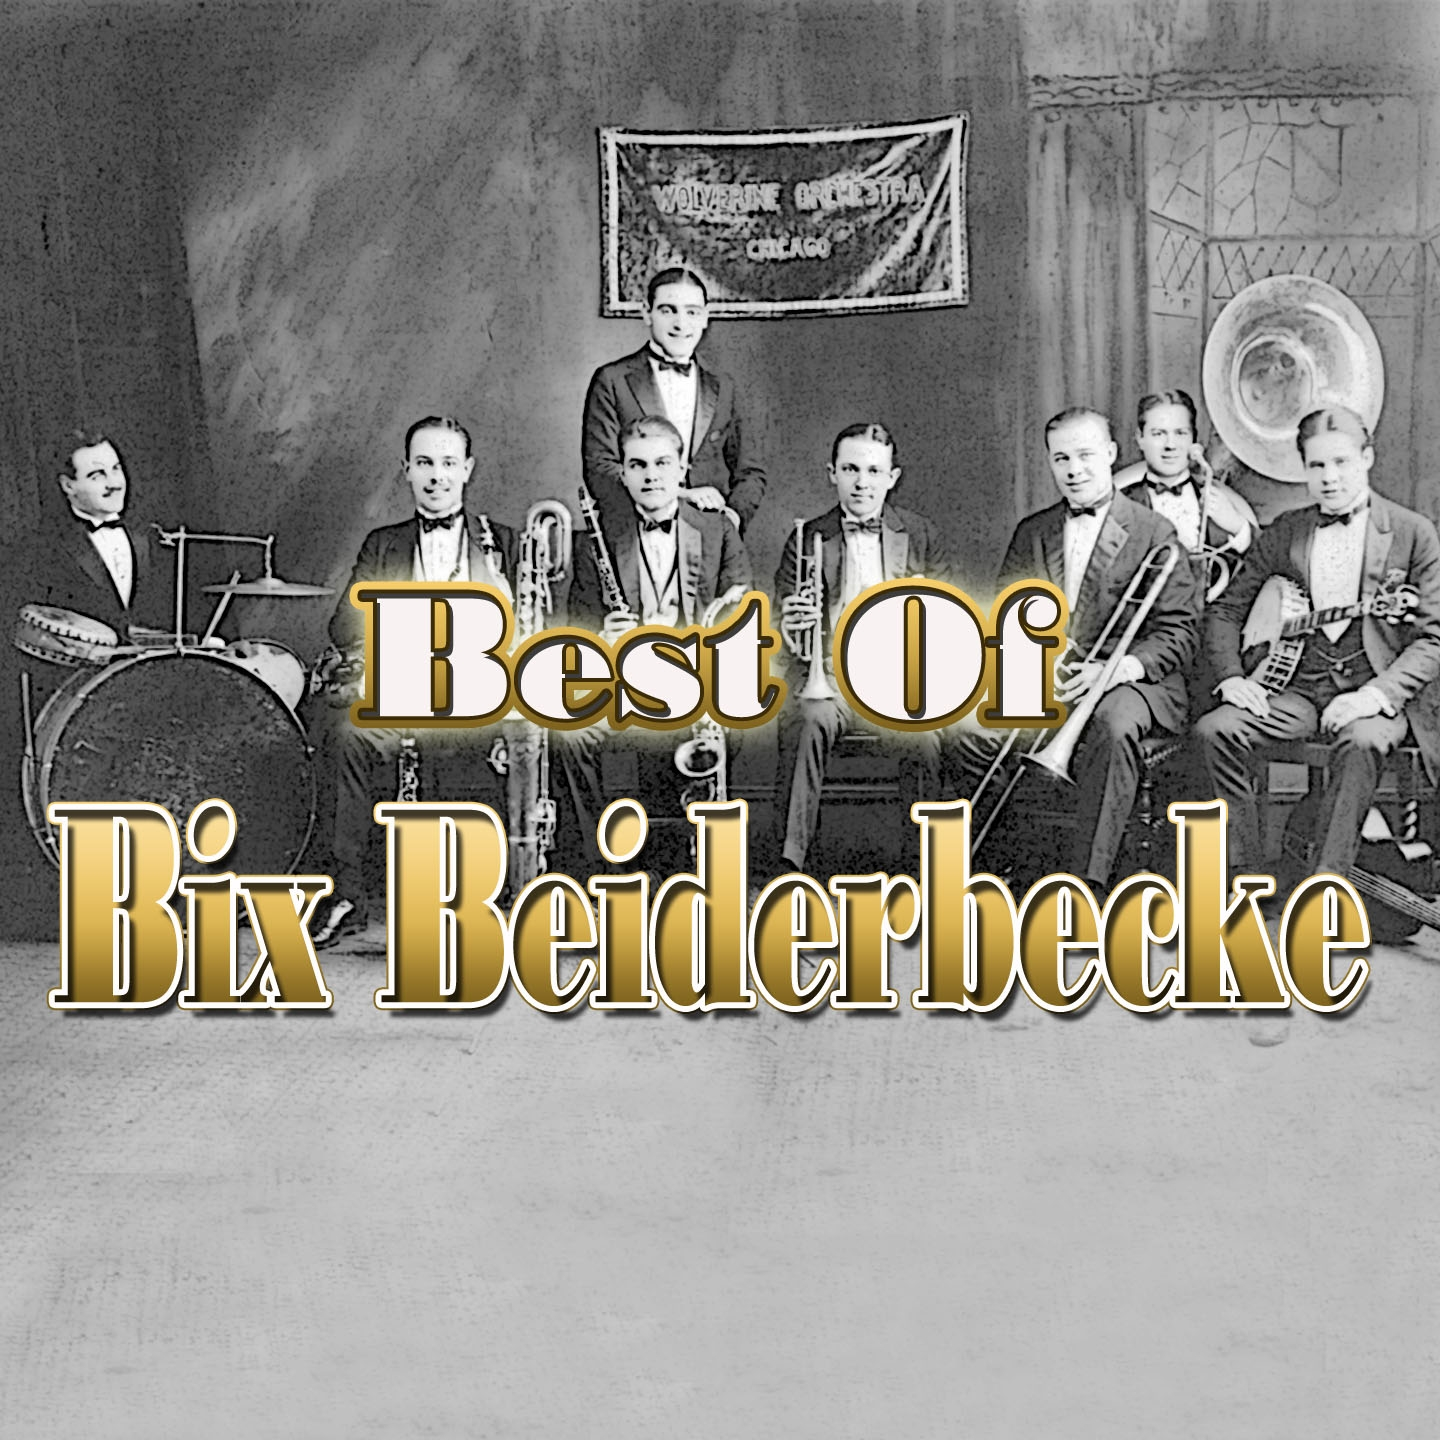 The Best of Bix Beiderbecke